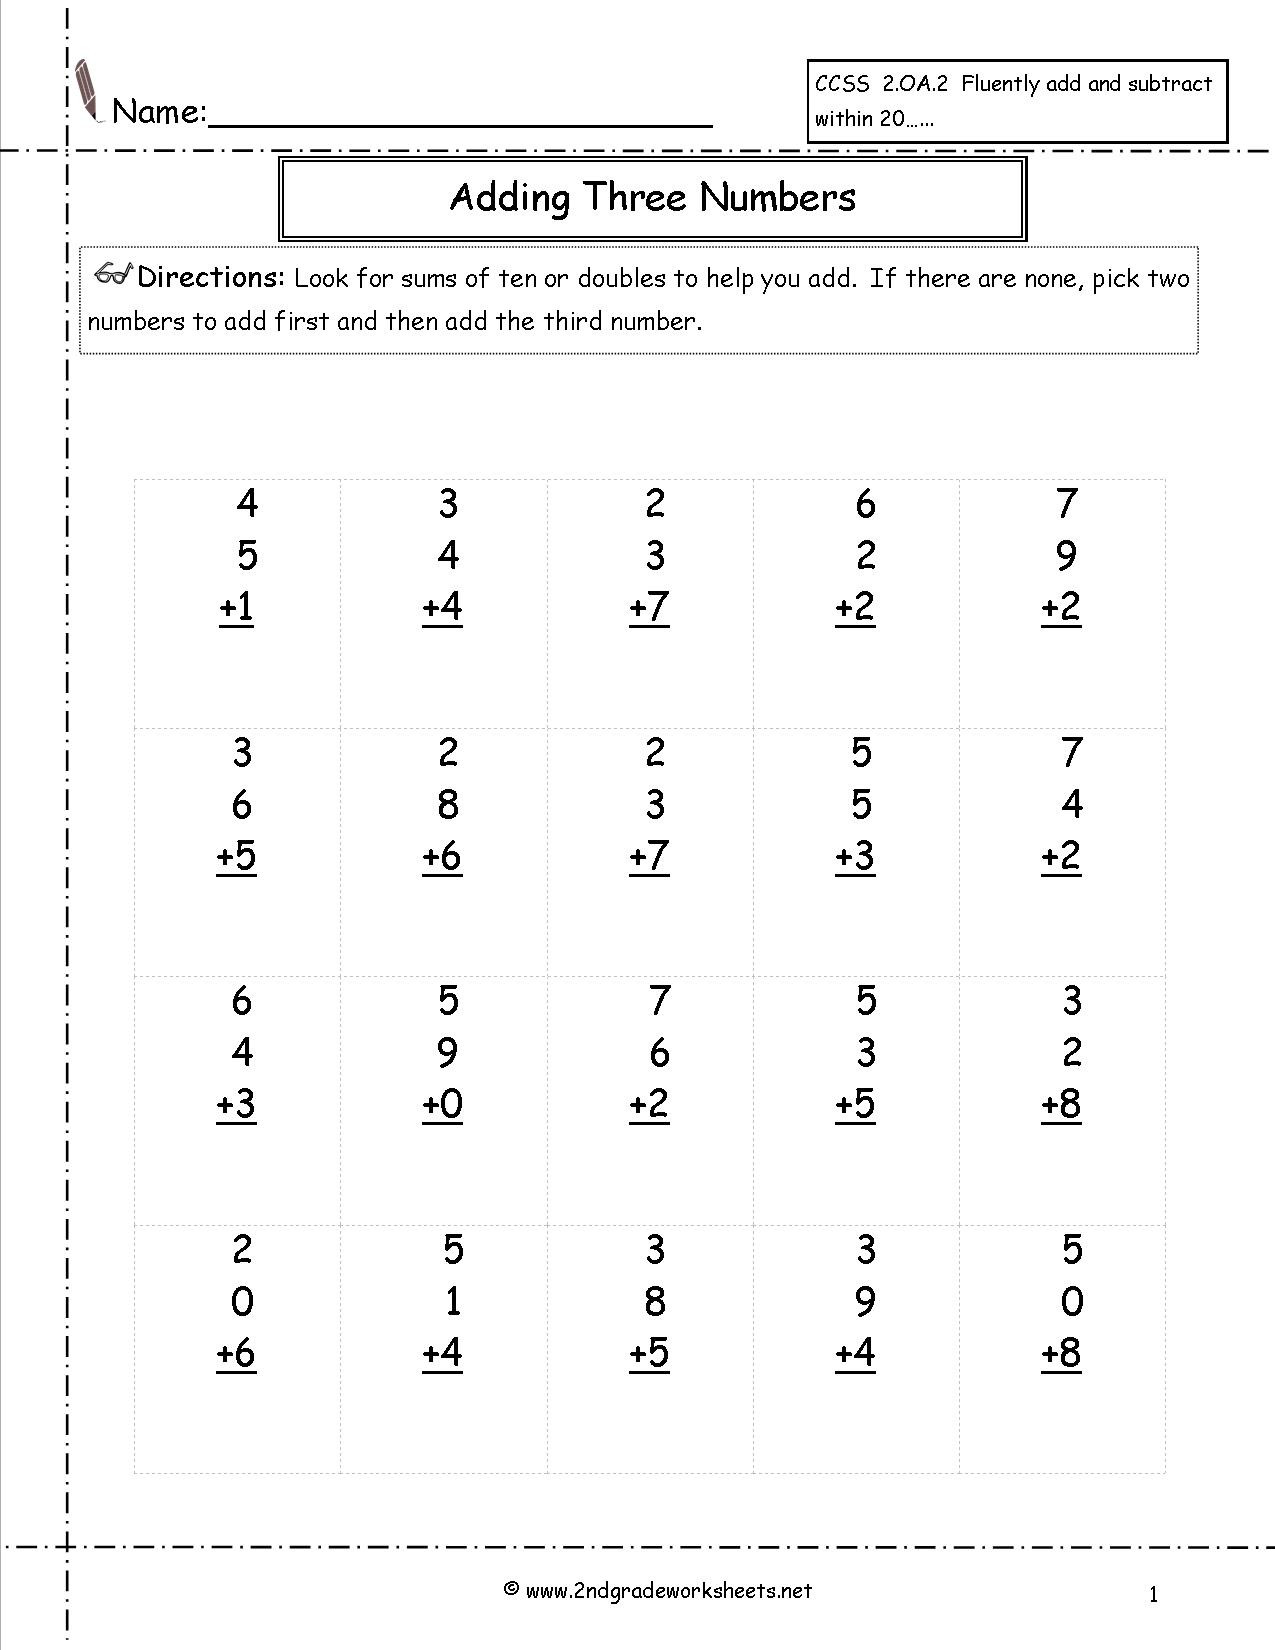 Array Worksheets for 2nd Graders Math Worksheet Free Maths and Printouts Practice for 2nd